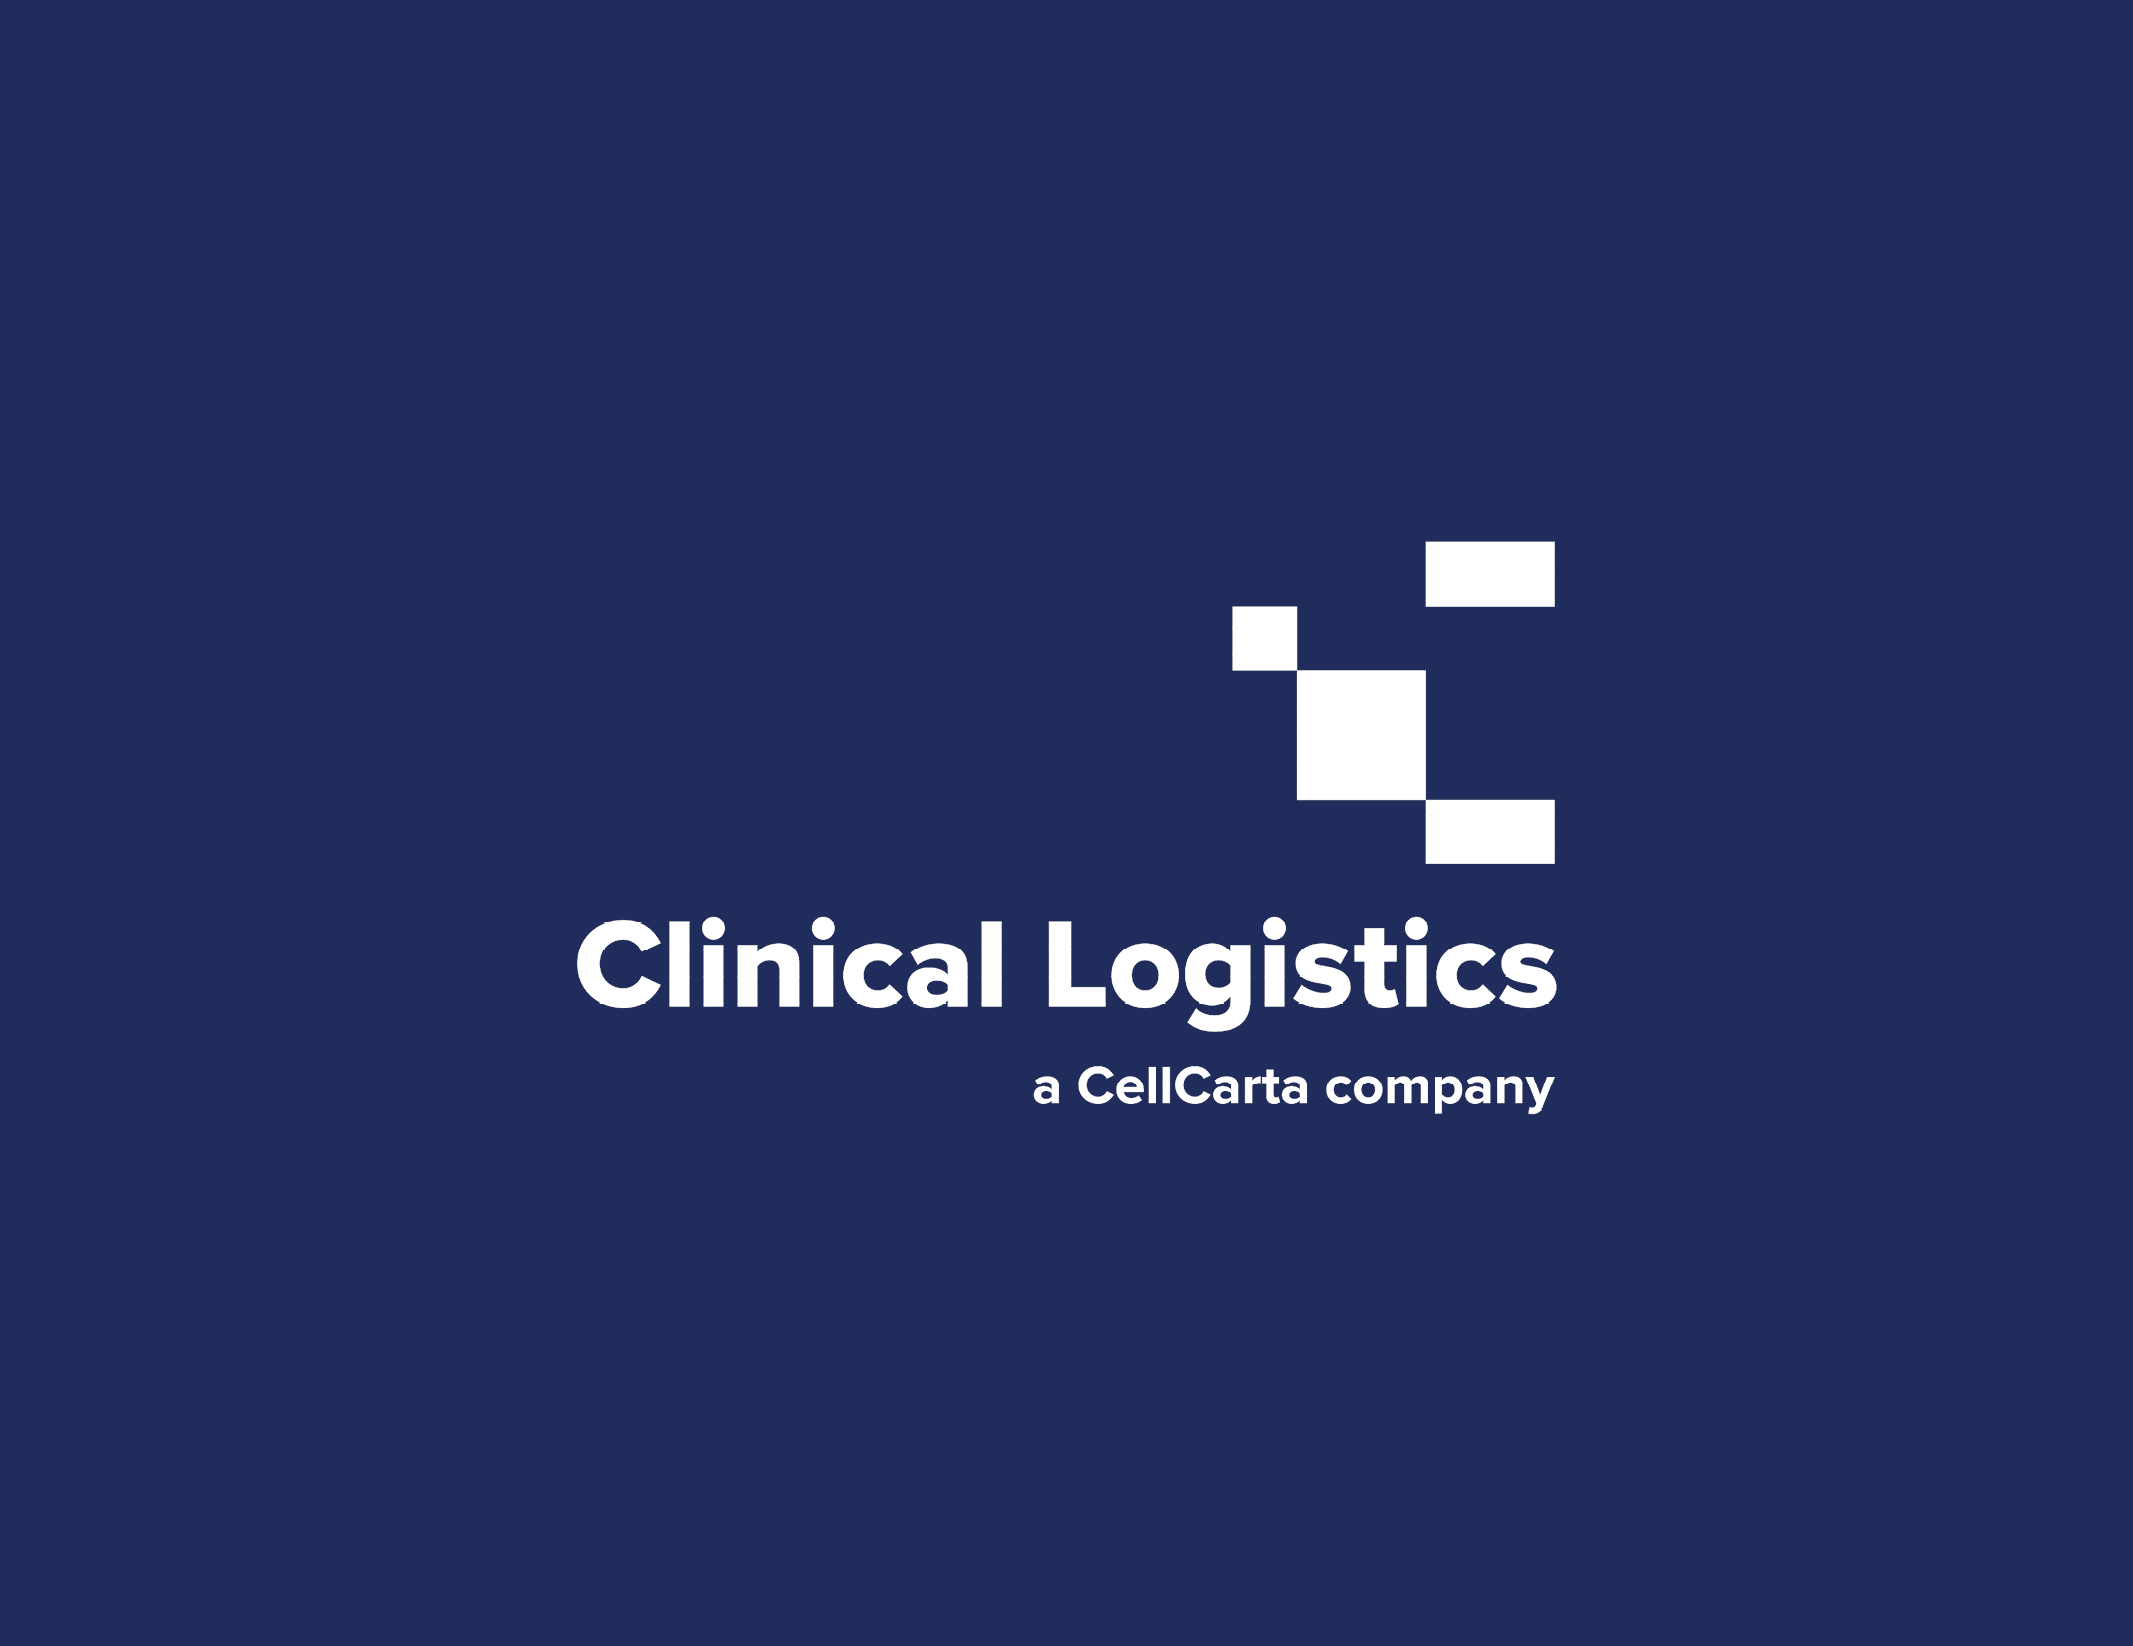 Clinical Logistics Inc. is now part of CellCarta